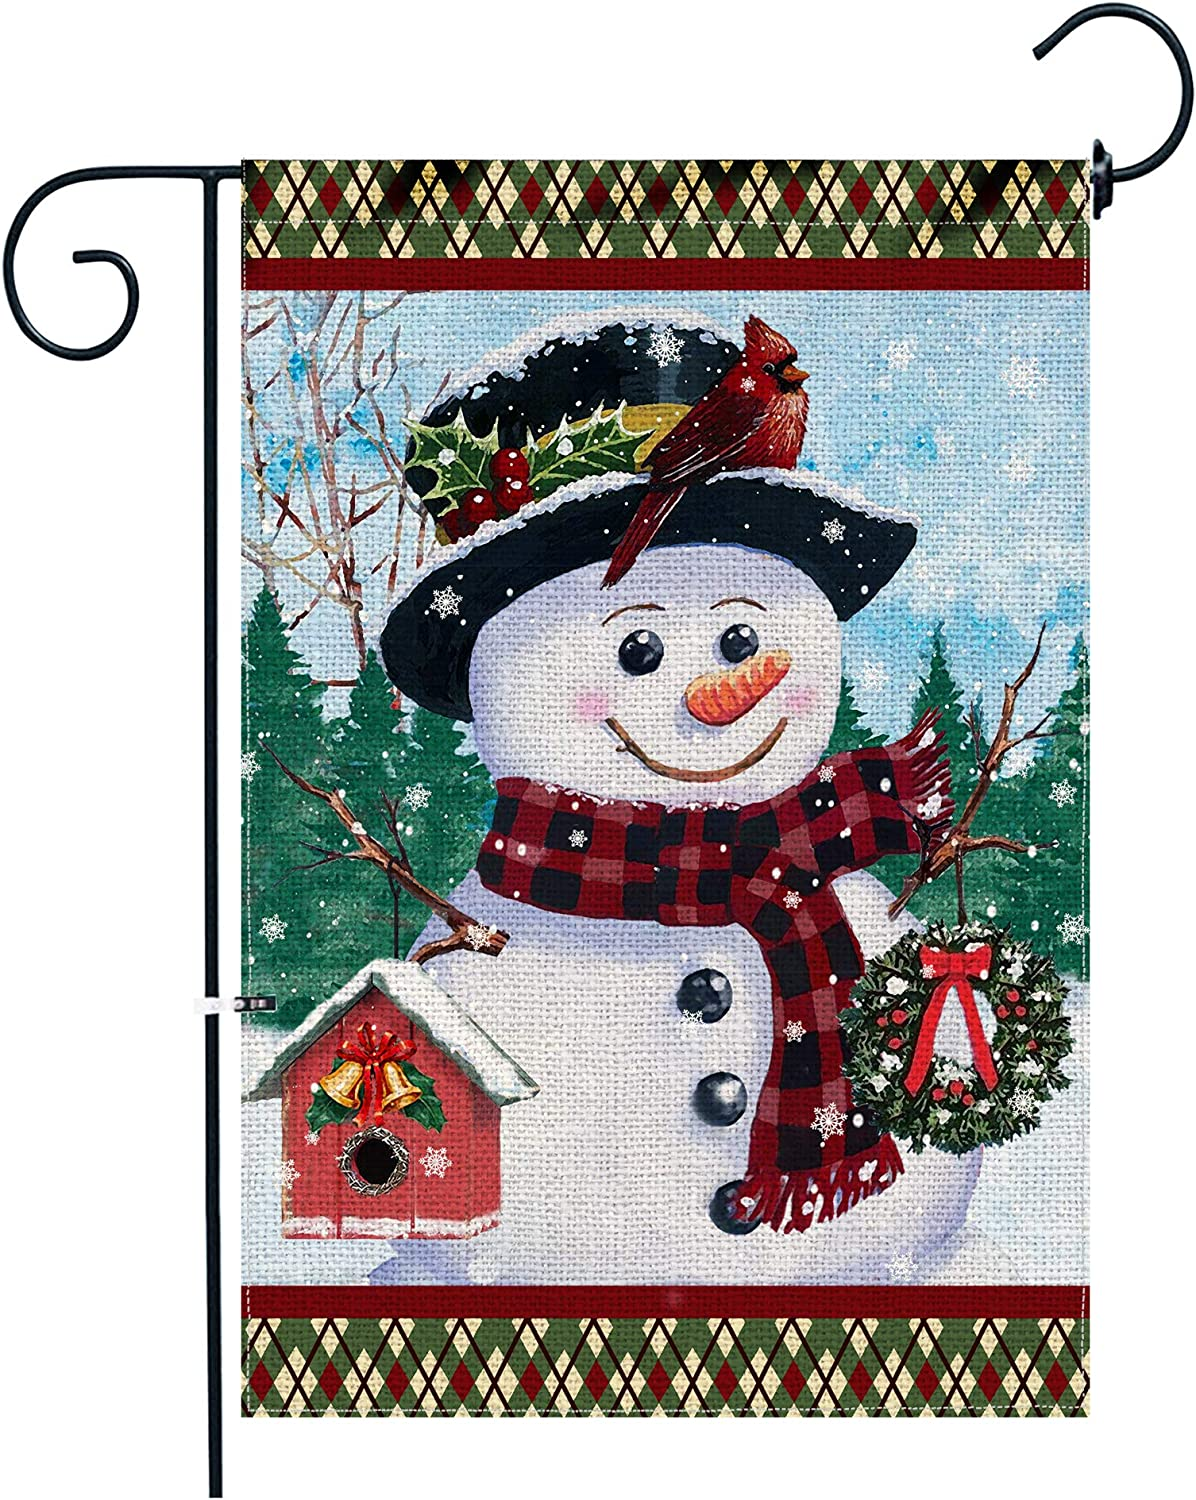 pinata Snowman Garden Flag 12 X 18 Inch Double Sided, Winter Christmas Yard Flag, Holiday Banners Seasonal Outdoor Decorations